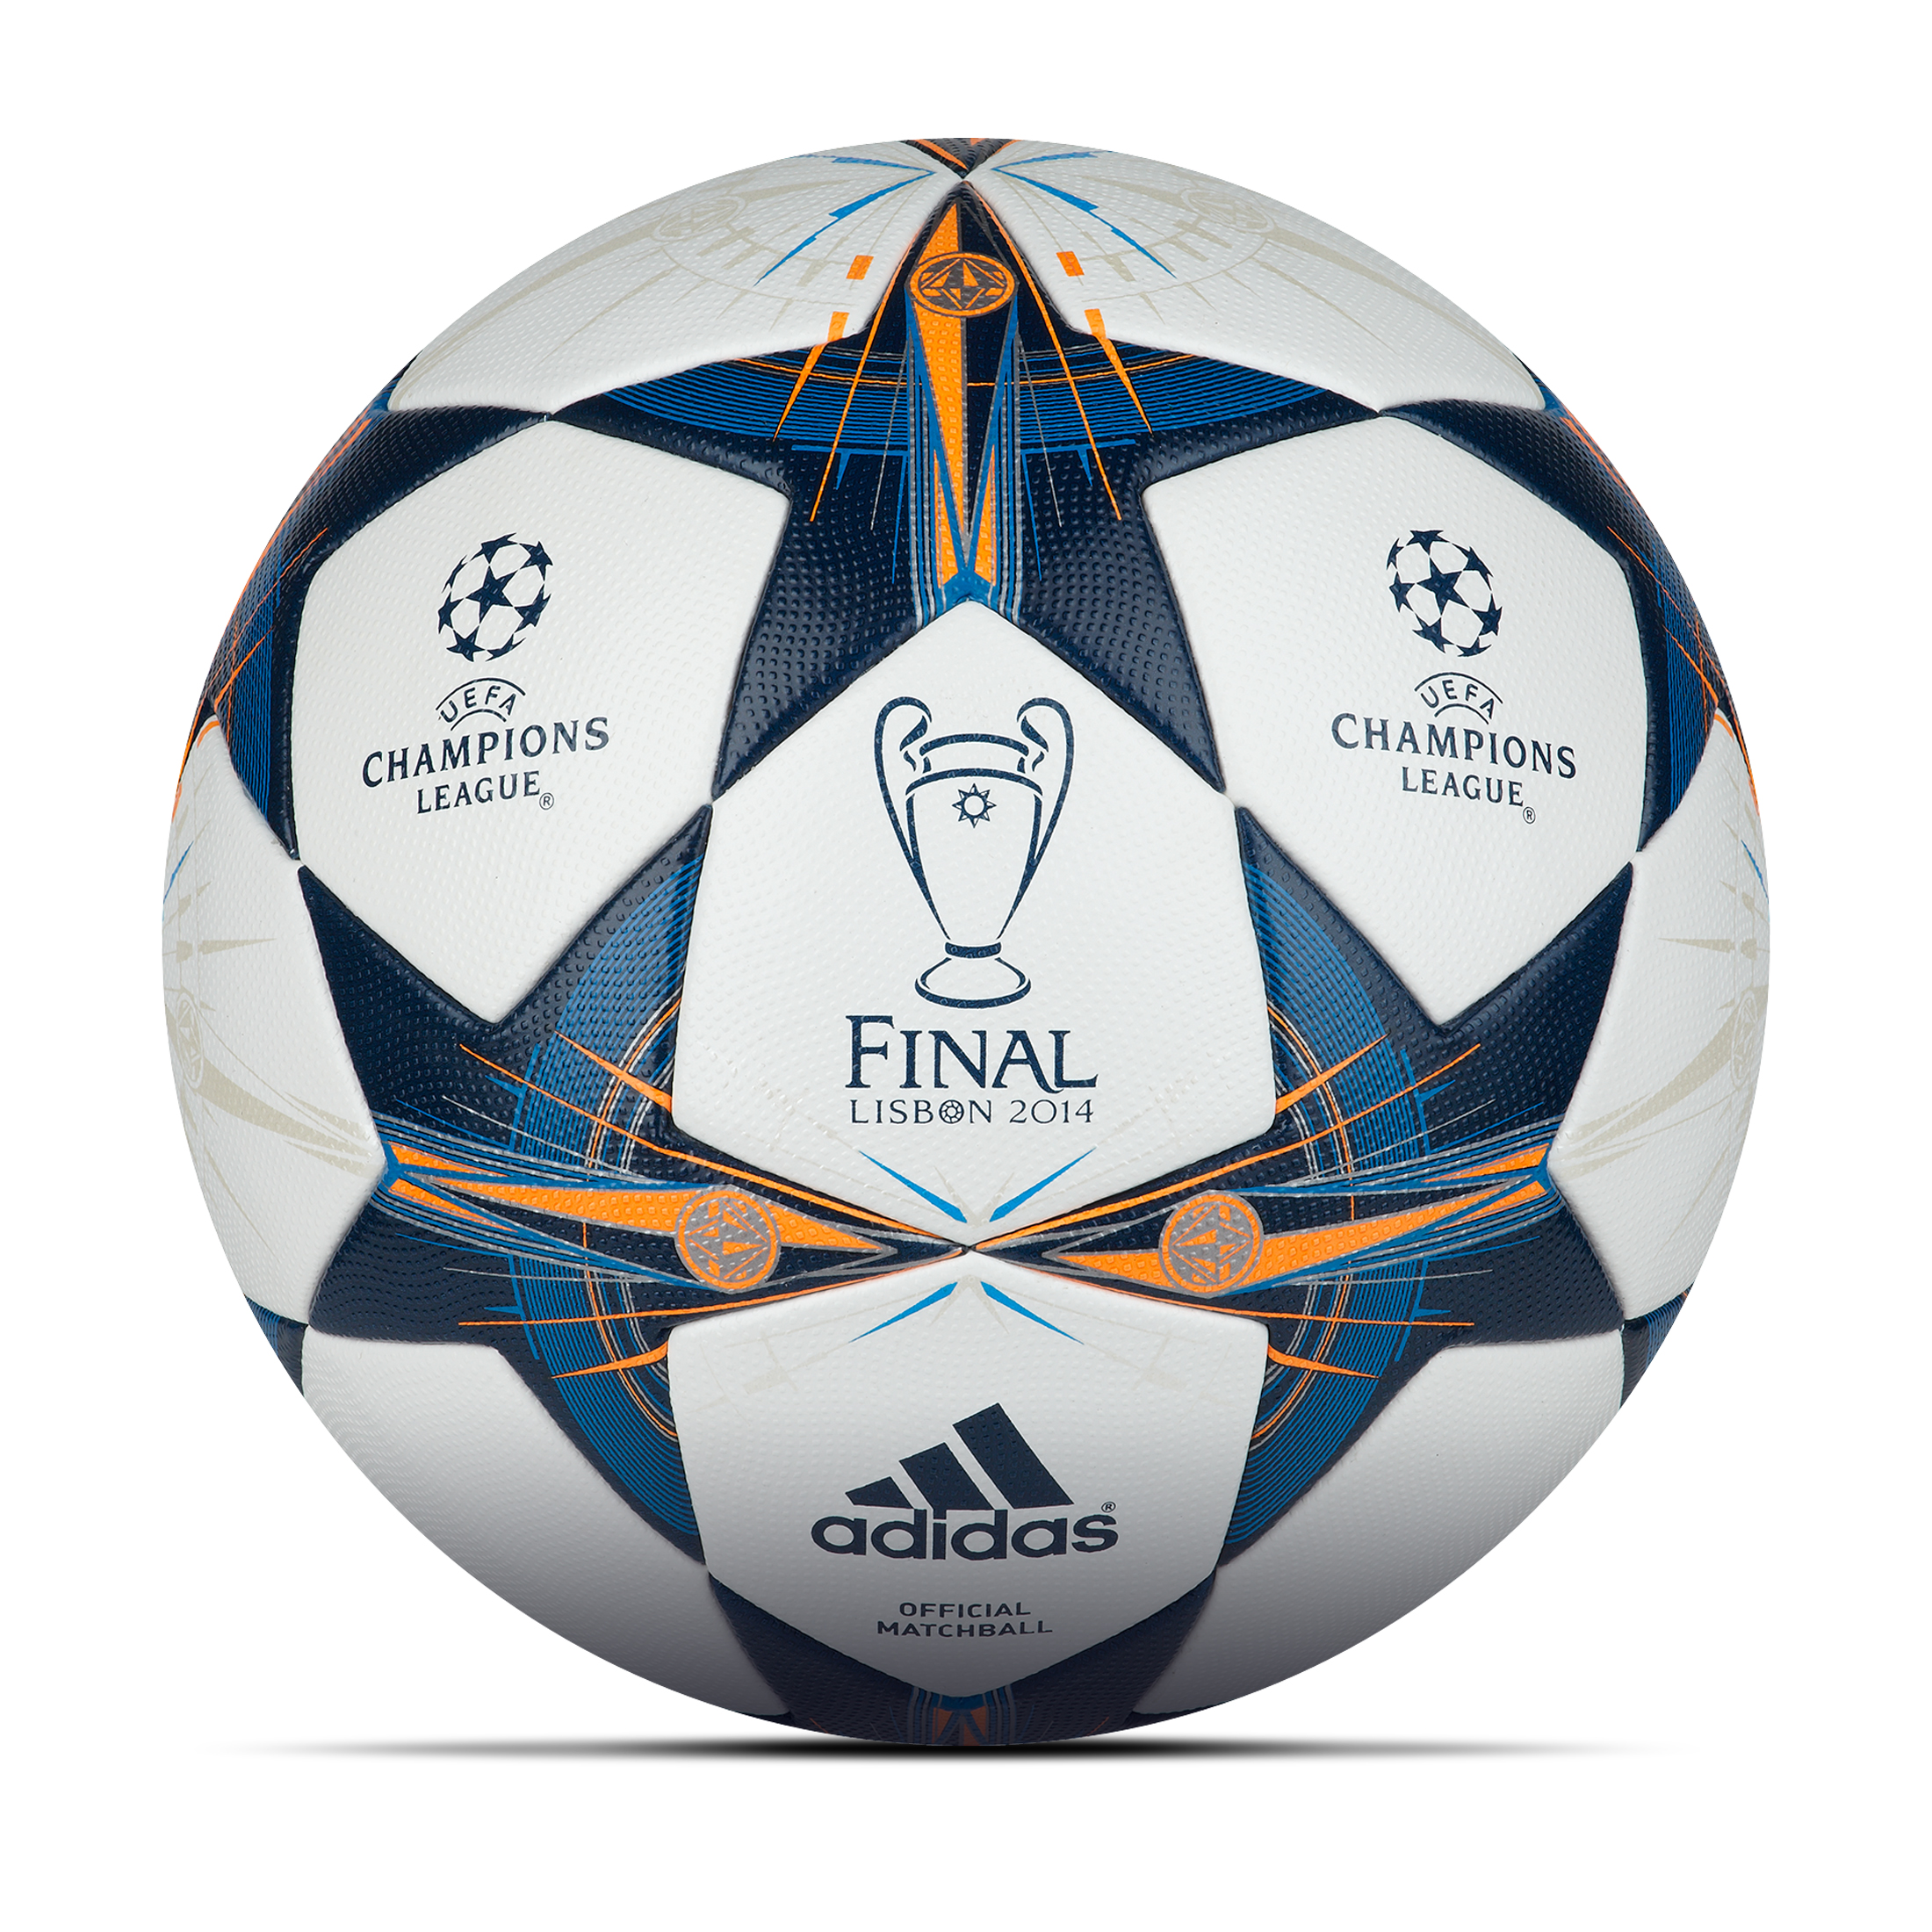 Adidas UEFA Champions League 2013/14 Final Official Match Ball White